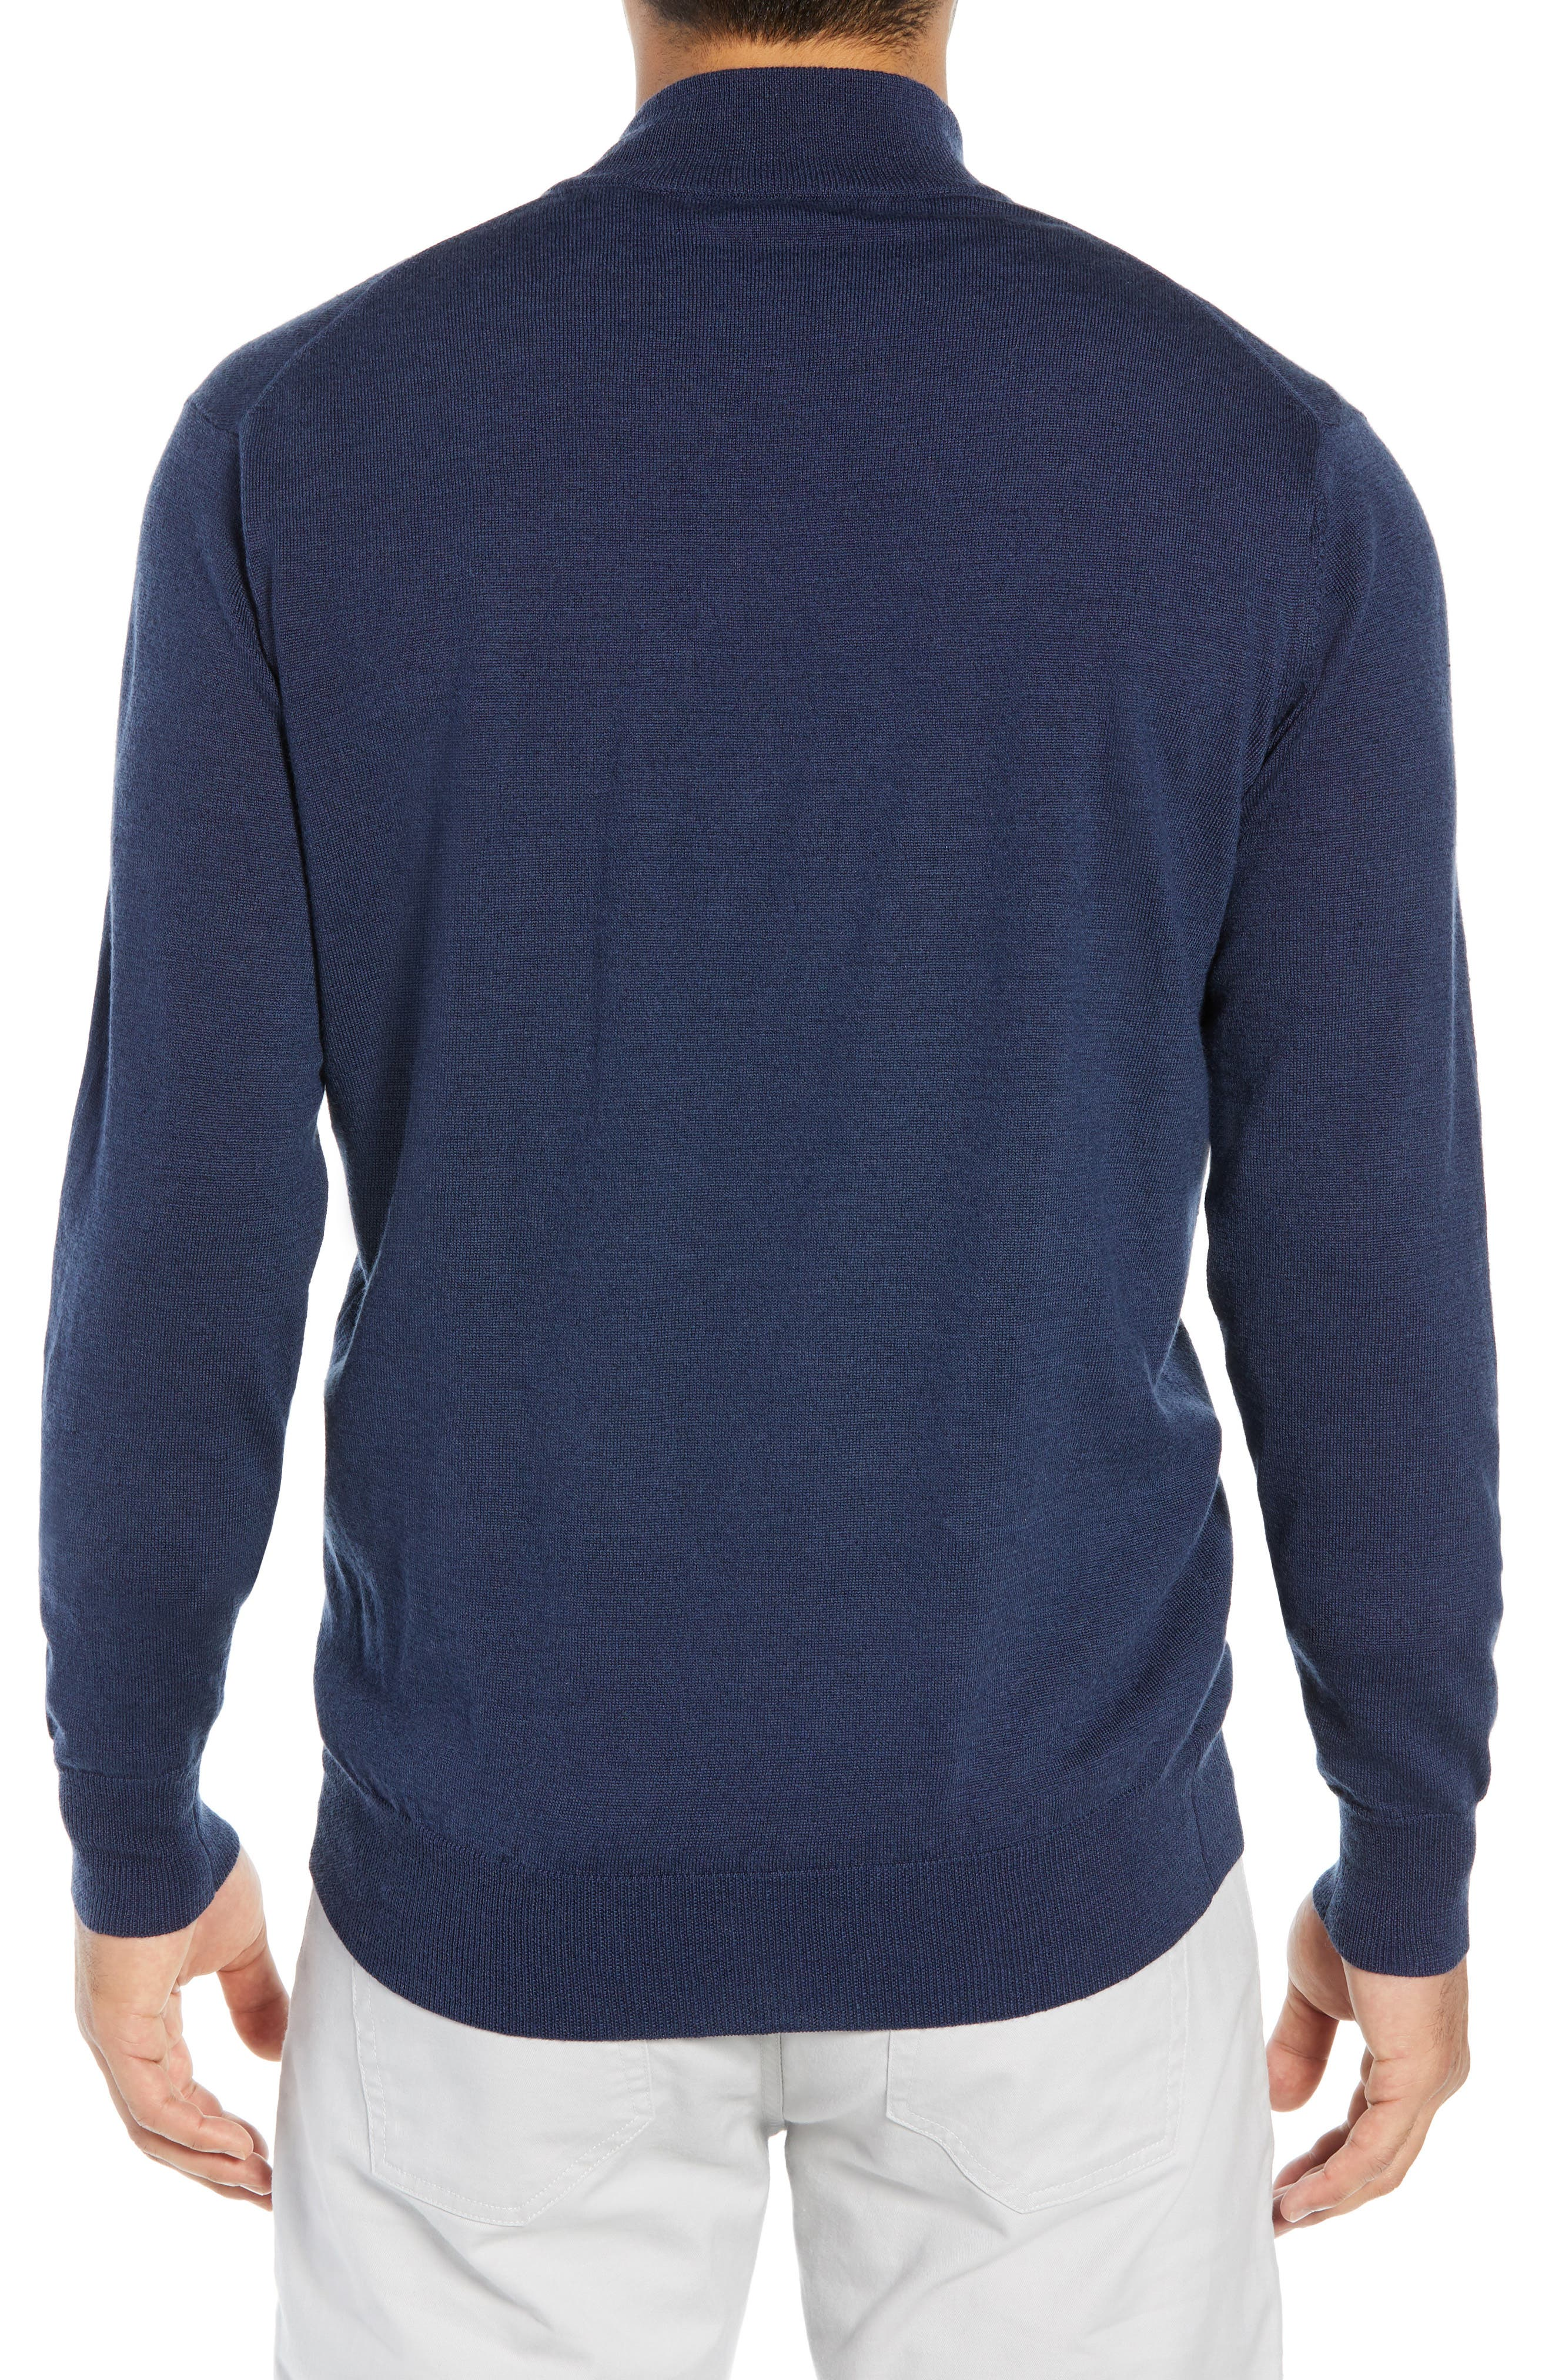 PETER MILLAR,                             Regular Fit Half Zip Wool & Linen Pullover,                             Alternate thumbnail 2, color,                             410